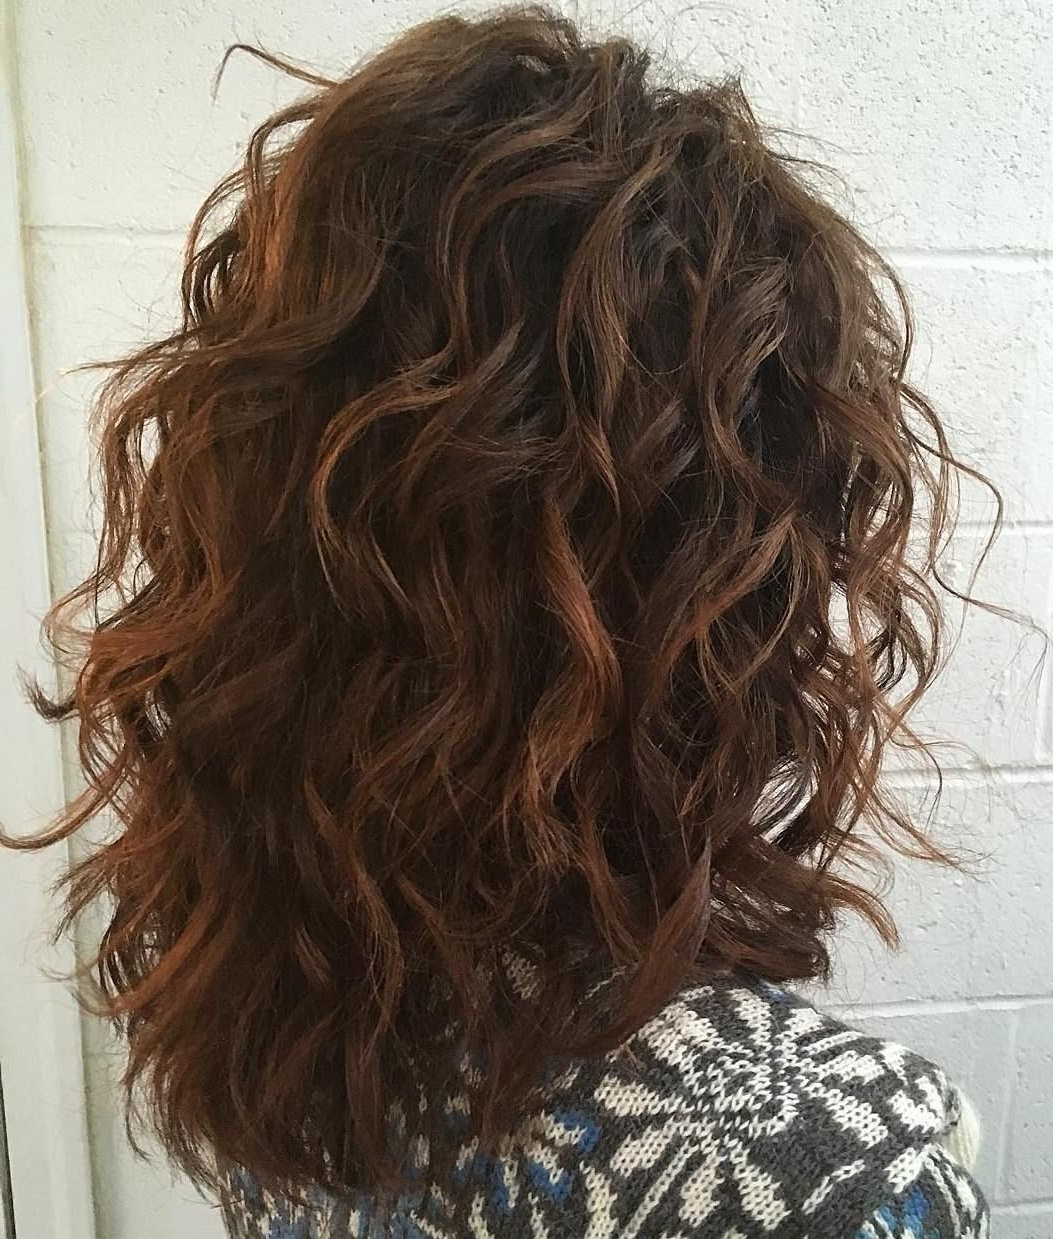 Pin On Cute Long Hairstyles 20+ Cute Medium Length Thick Wavy Hairstyles